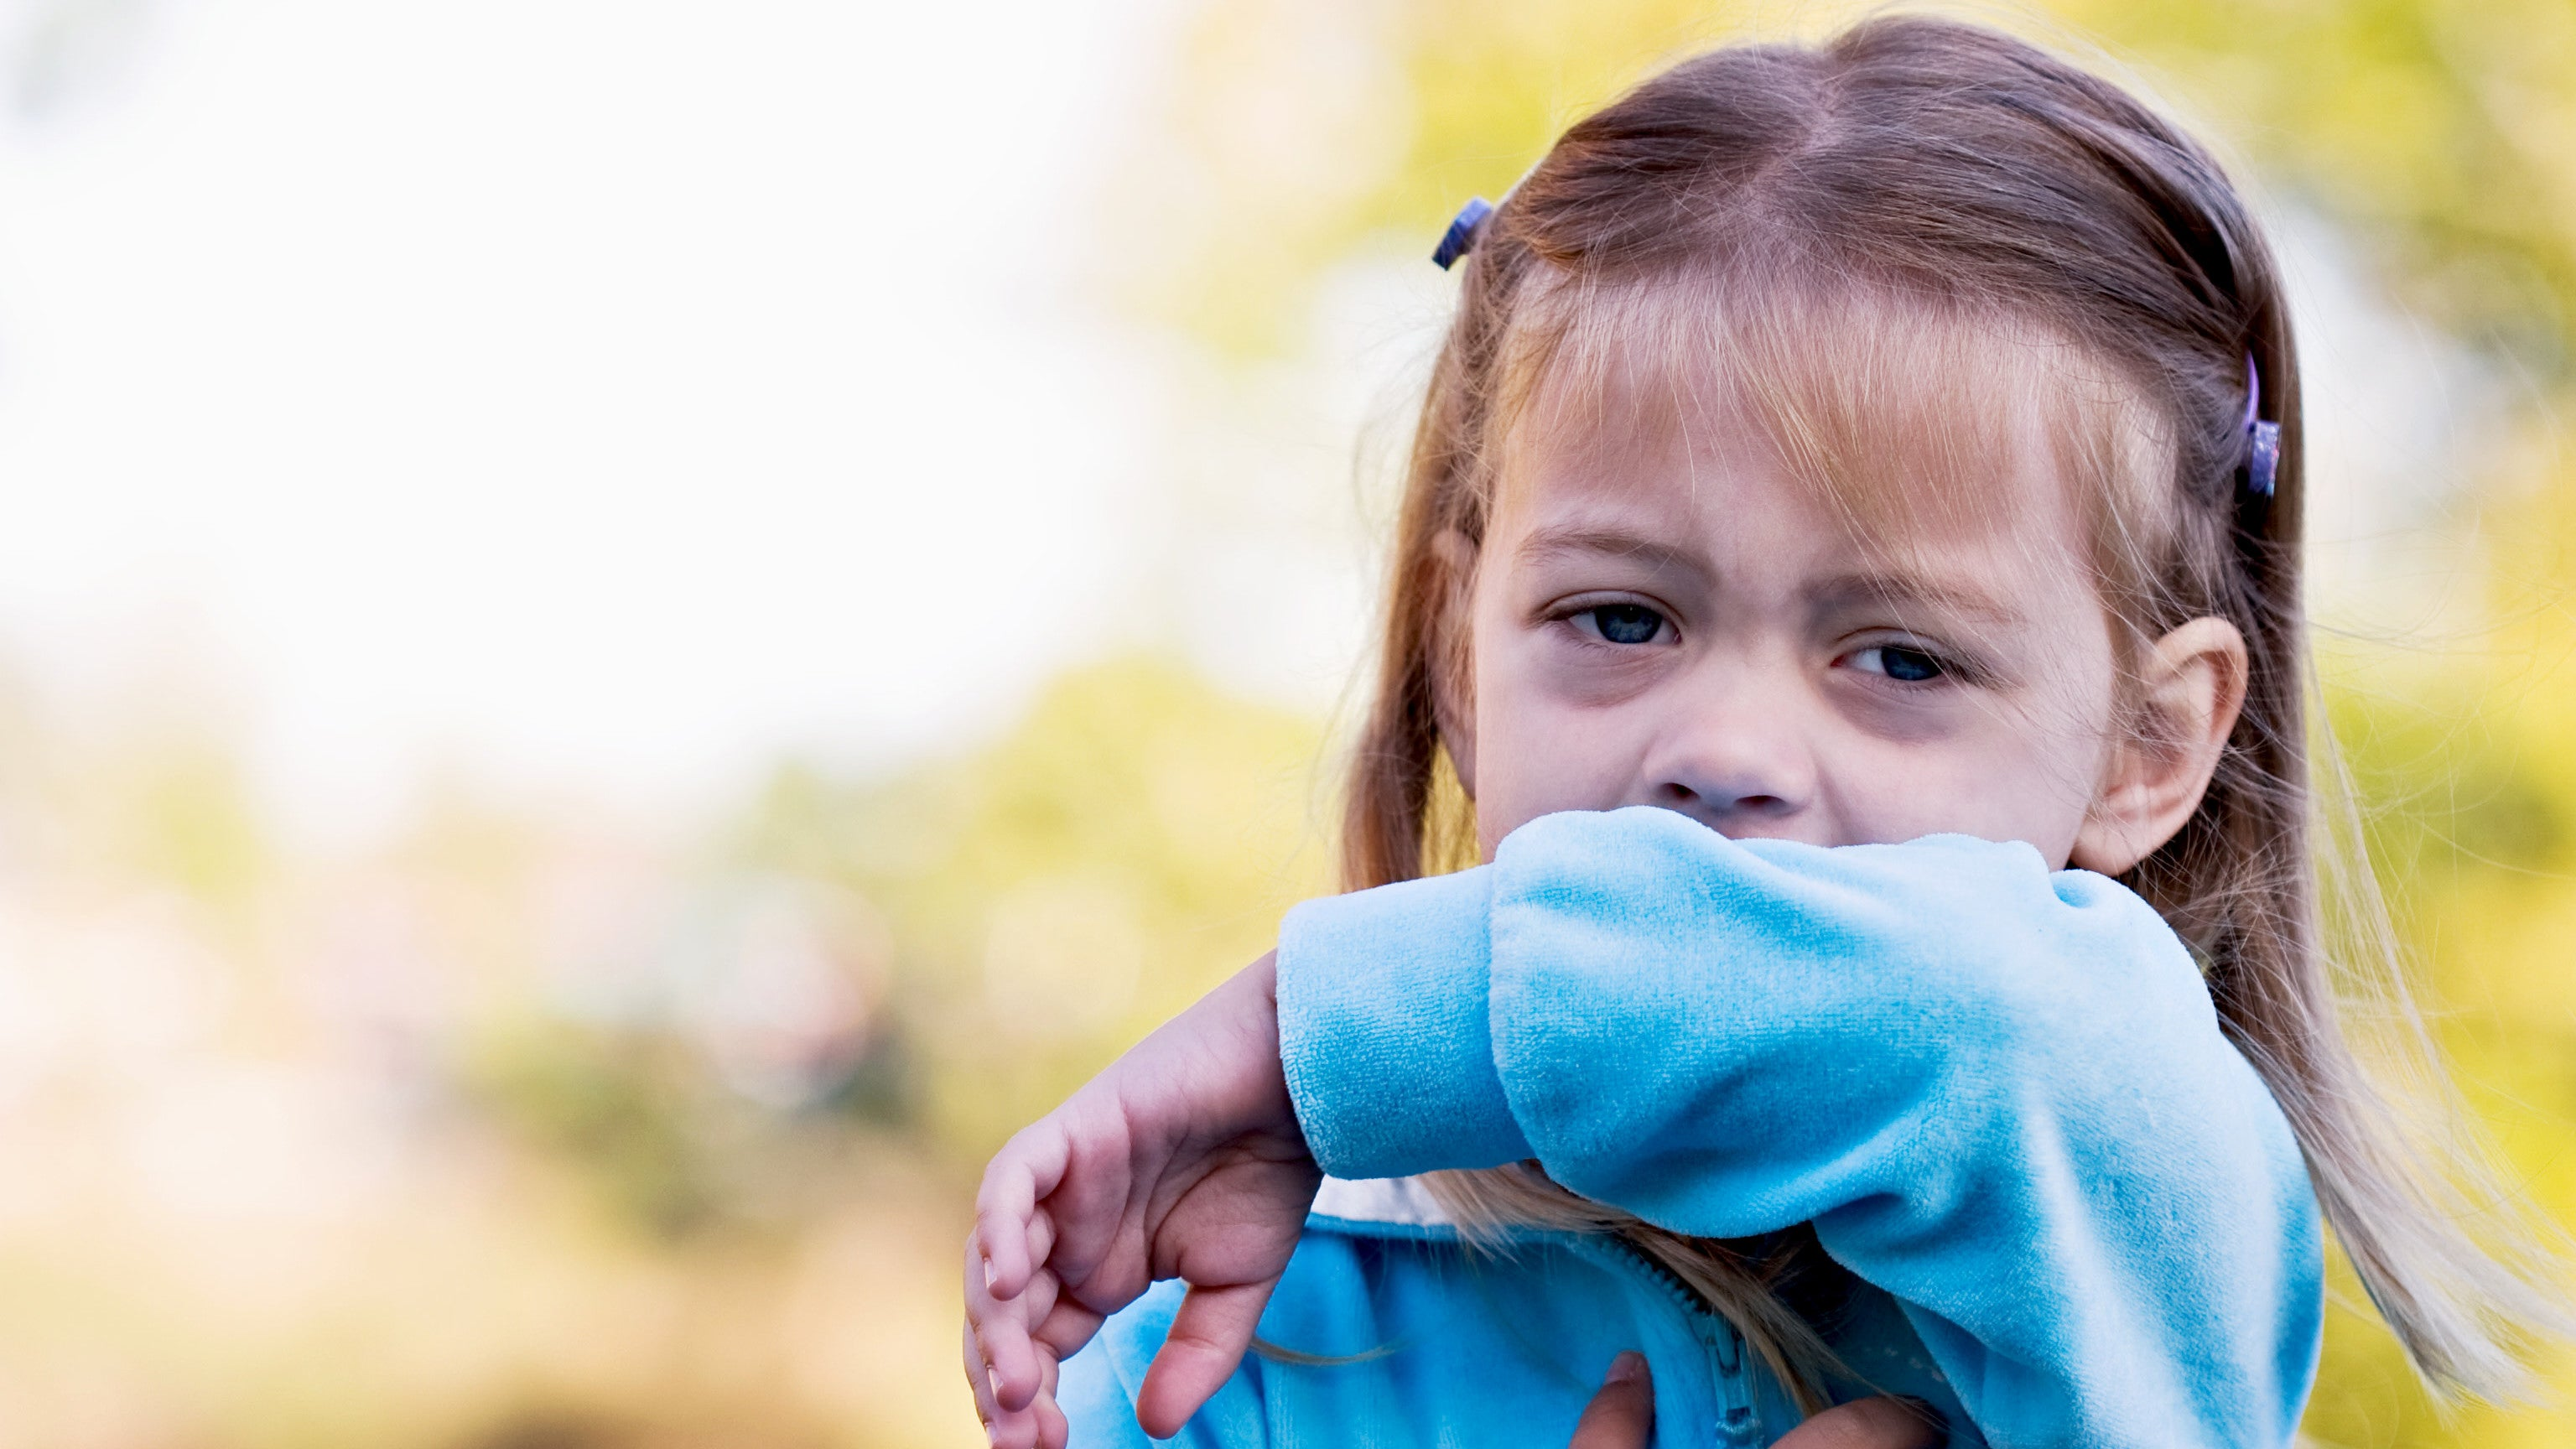 Teach Little Kids To Cough Into Their 'Cough Pocket'